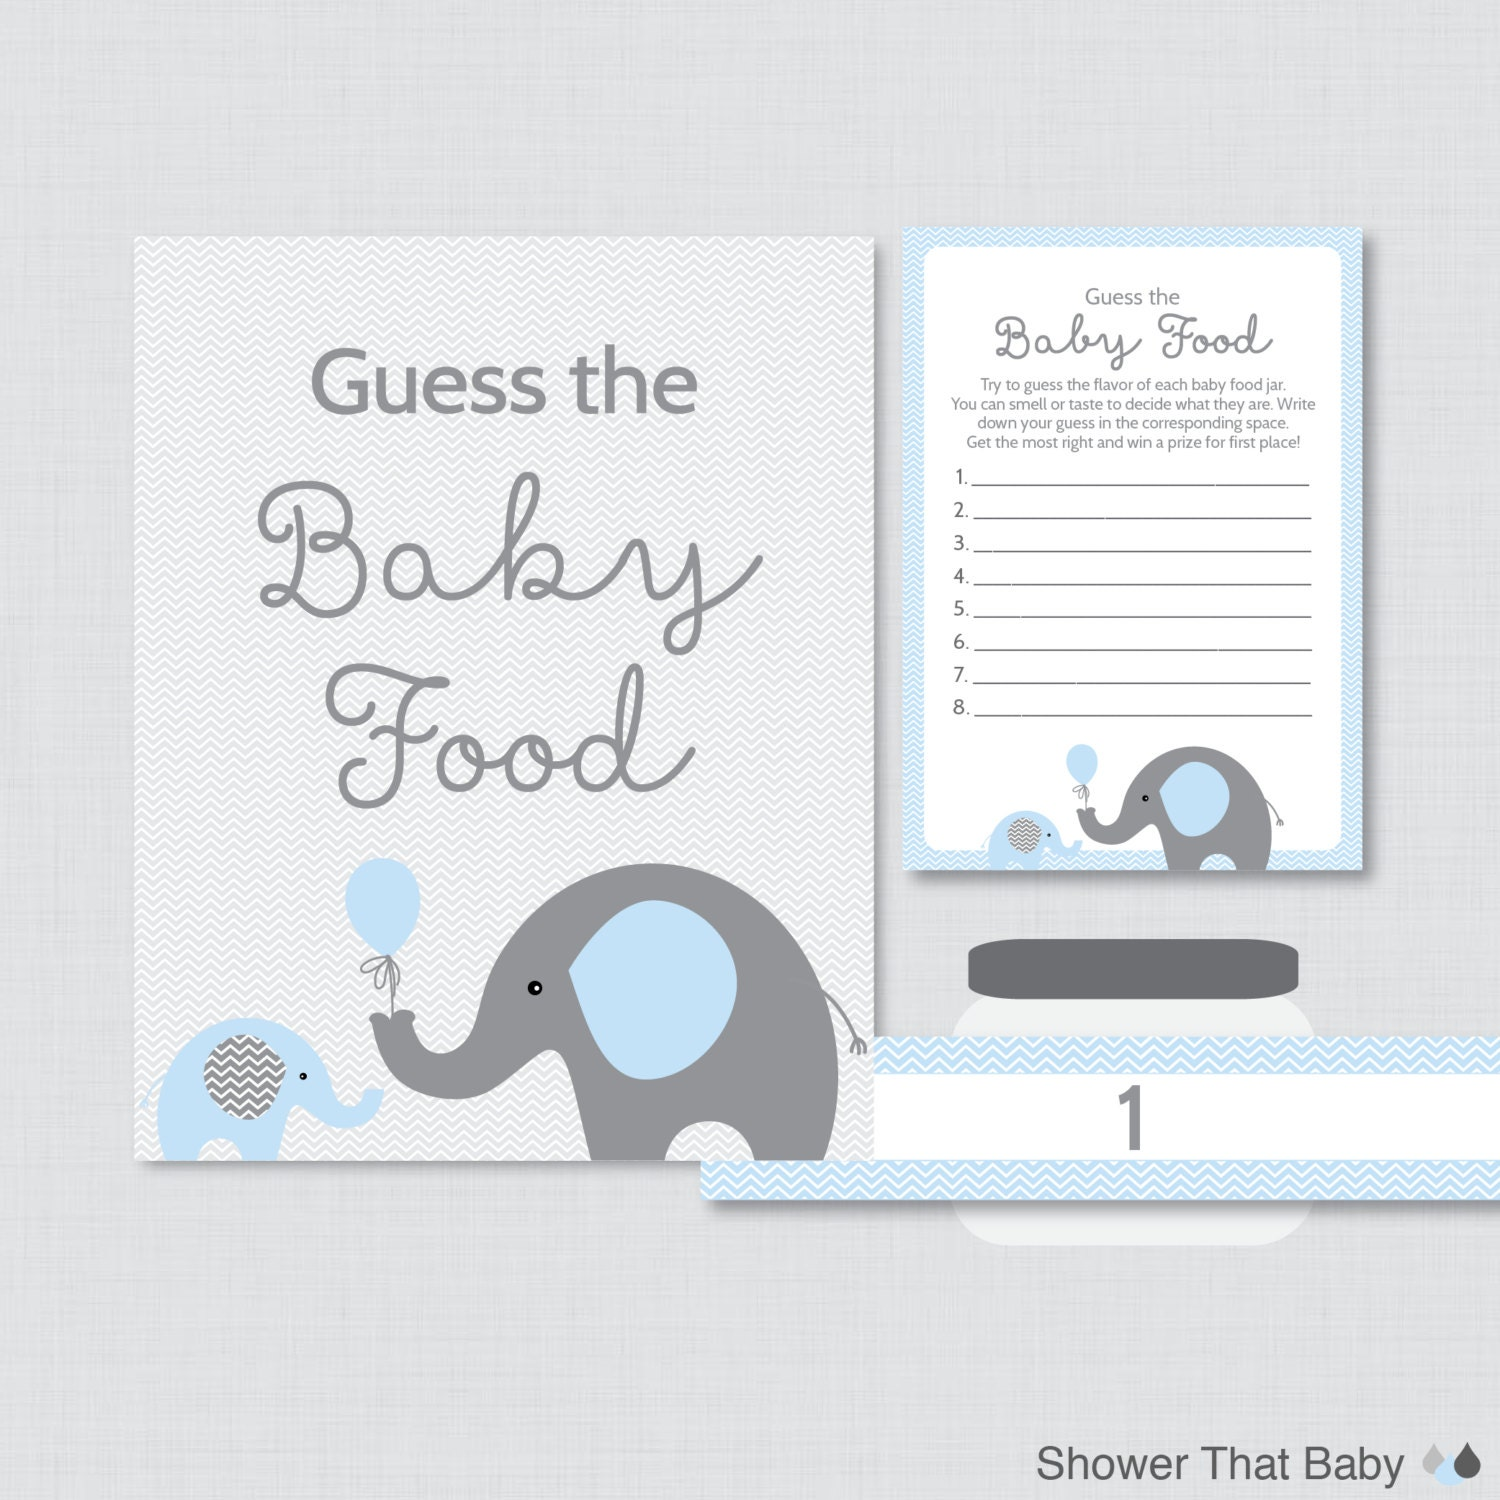 image regarding Guess the Baby Food Game Printable named Elephant Kid Guessing Sport Printable Wager reputation